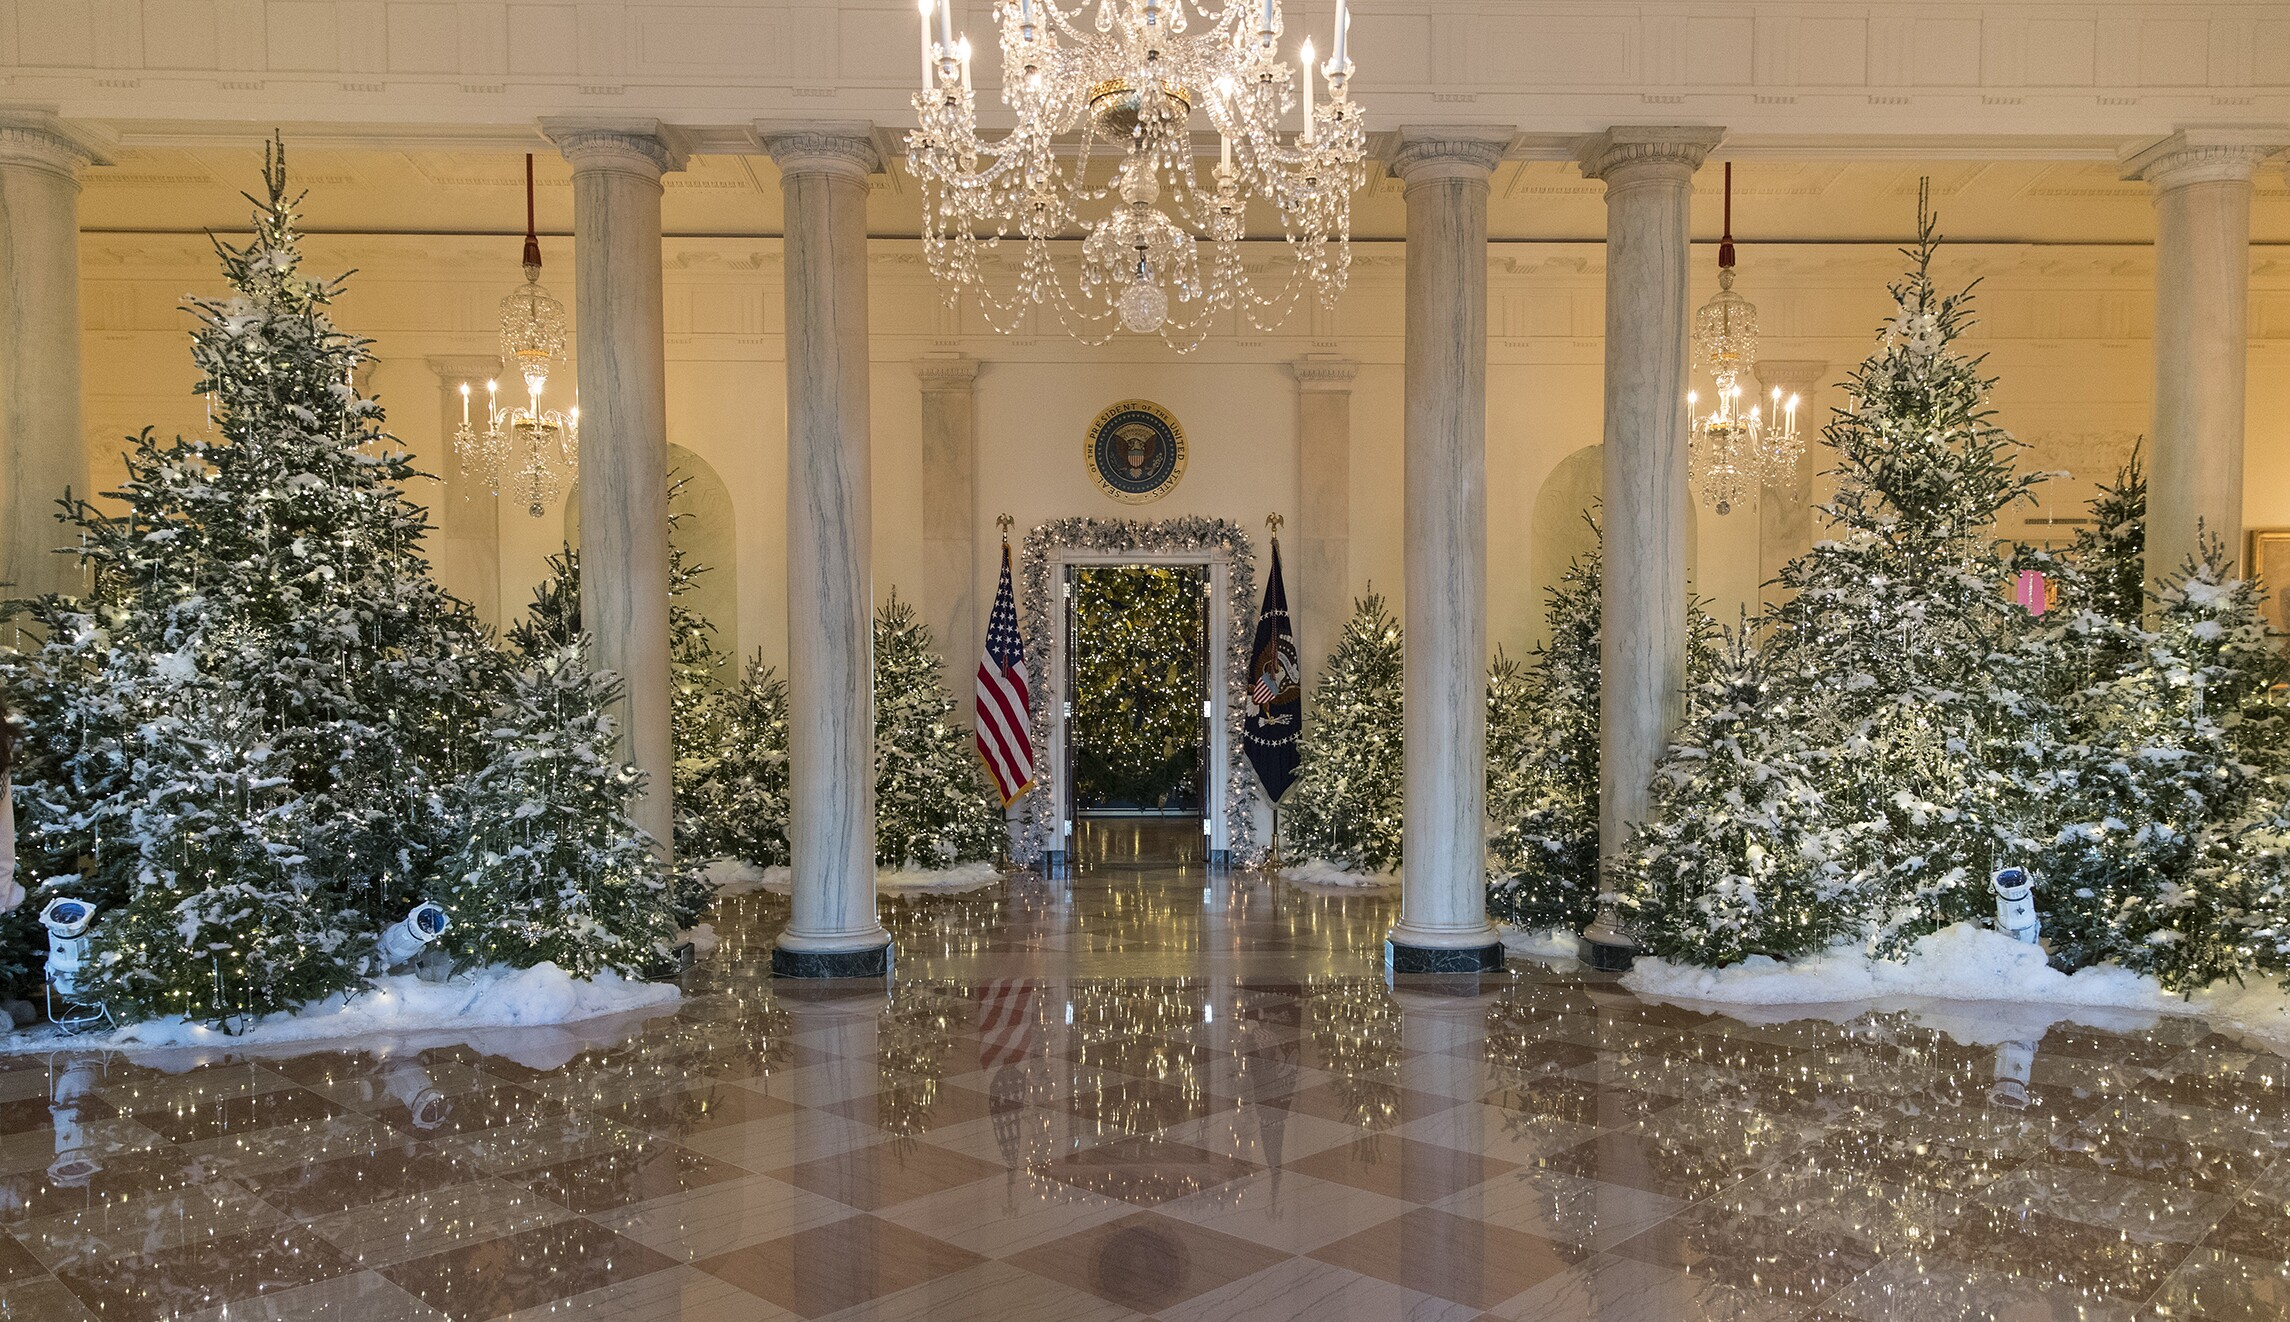 Melania Trump White House Christmas.Melania Trump S First White House Holiday Decorations Unveiled